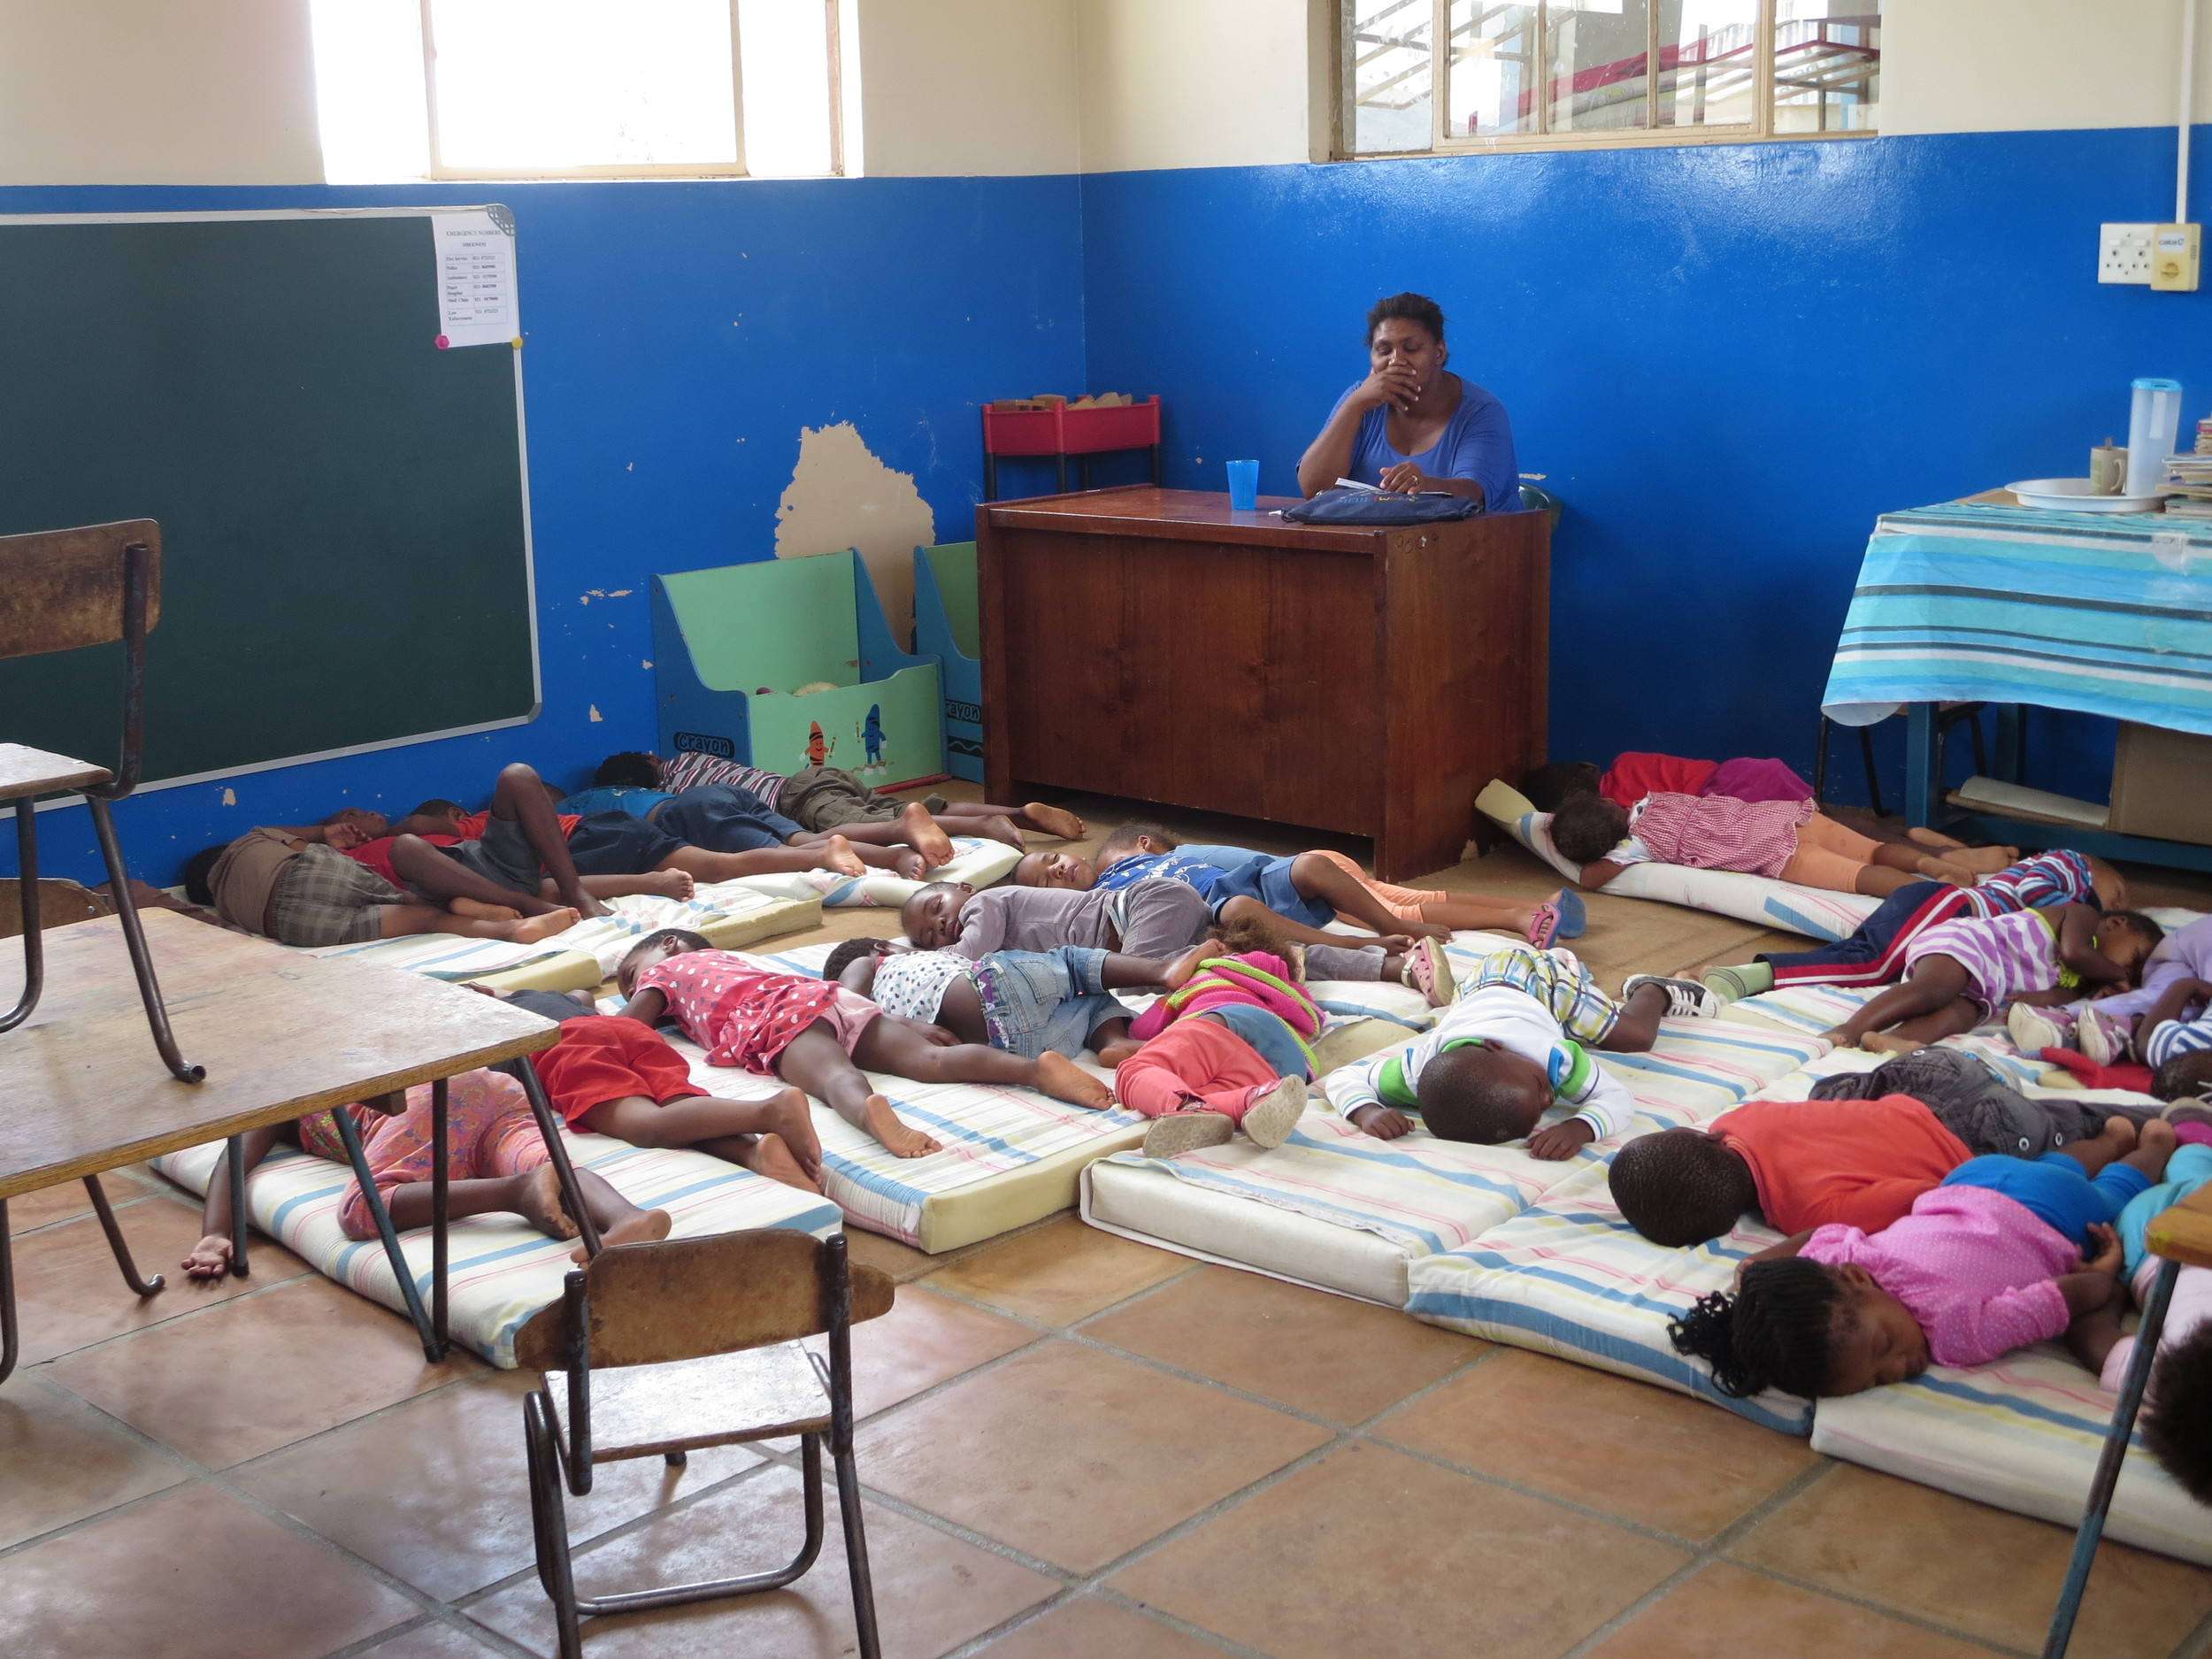 Beside Enza is a kindergarten - the kids were all sleeping when we first came to visit